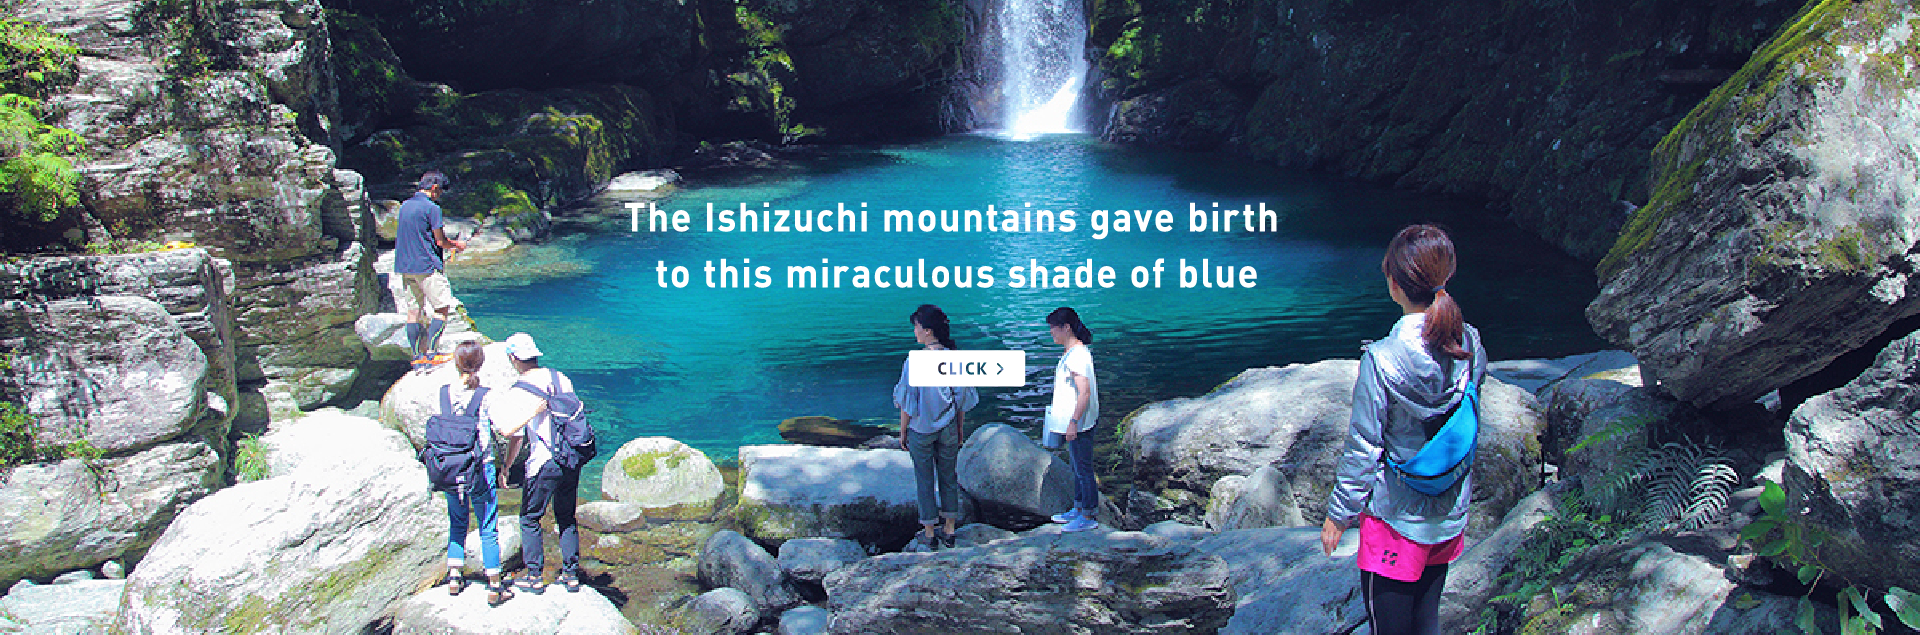 The Ishizuchi mountains gave this miraculous shade of blue